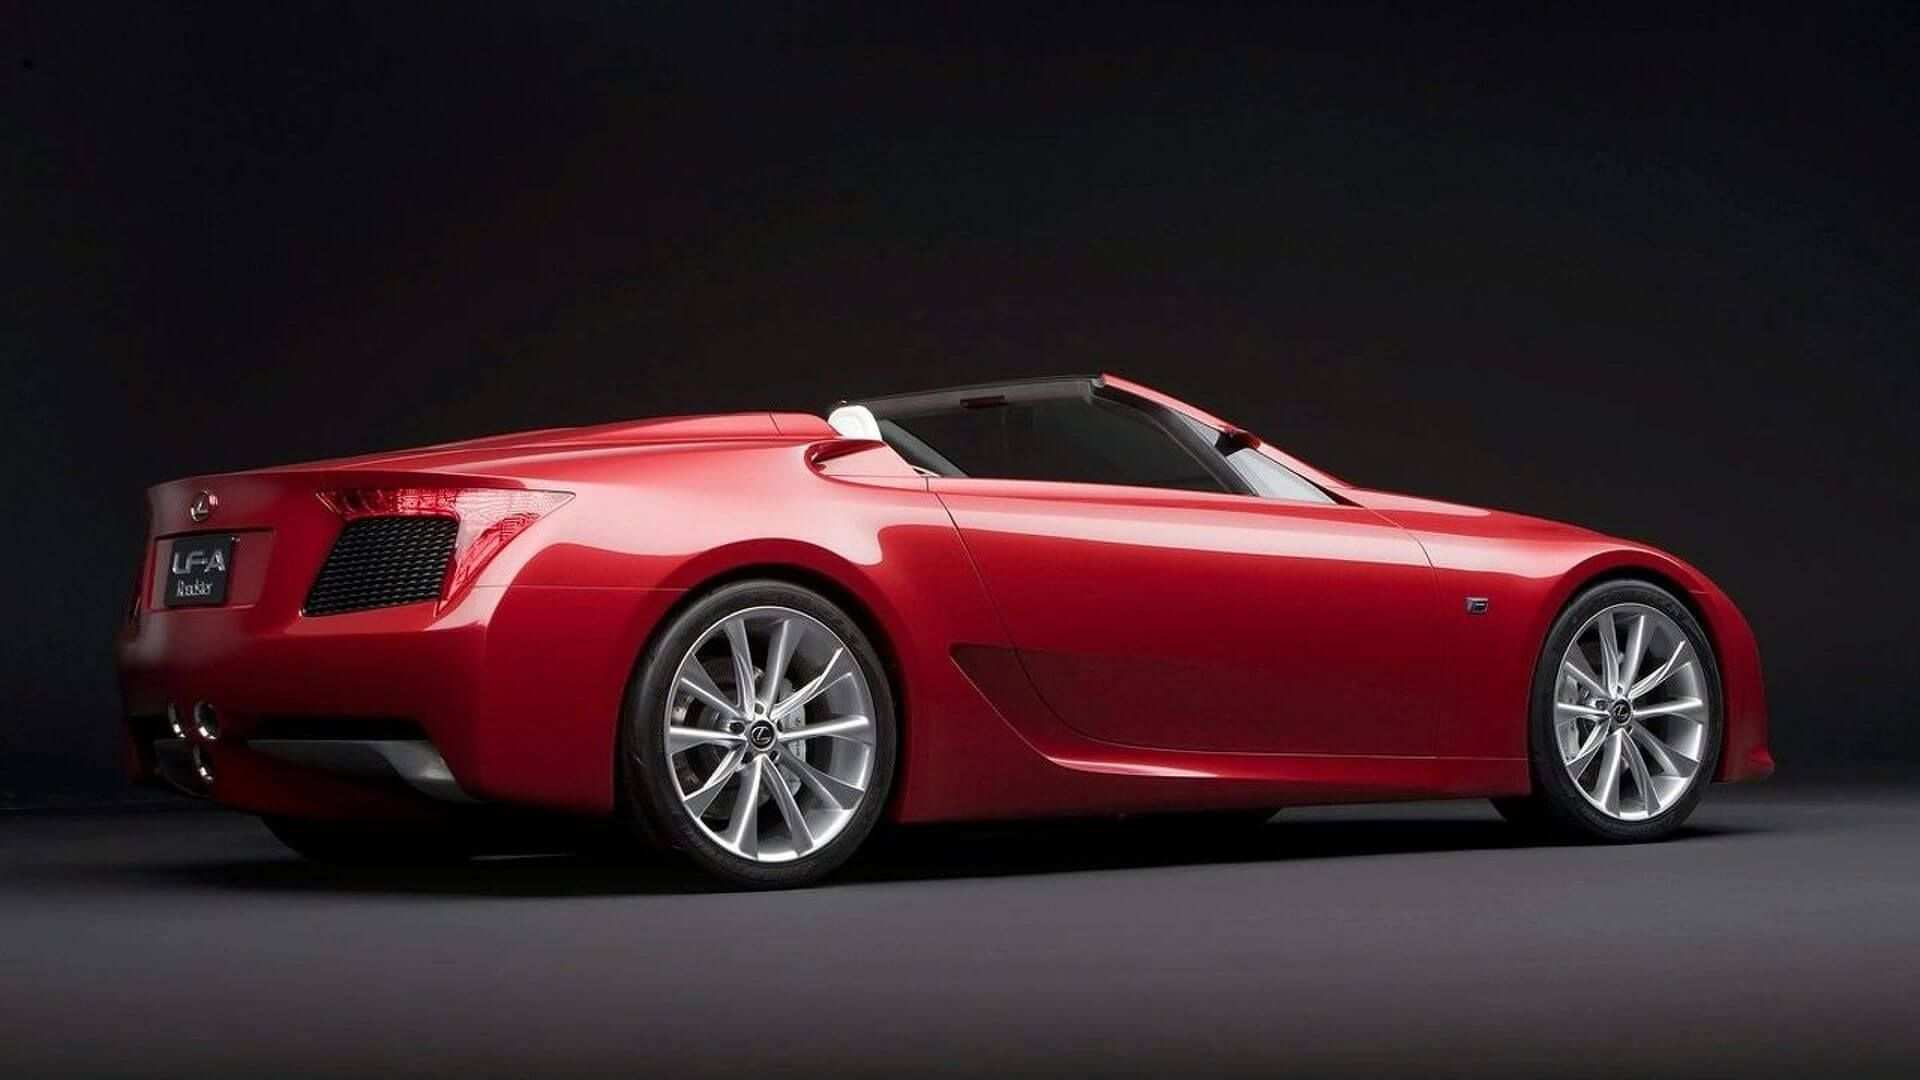 81 The Best Lfa Lexus 2019 Redesign Performance with Best Lfa Lexus 2019 Redesign